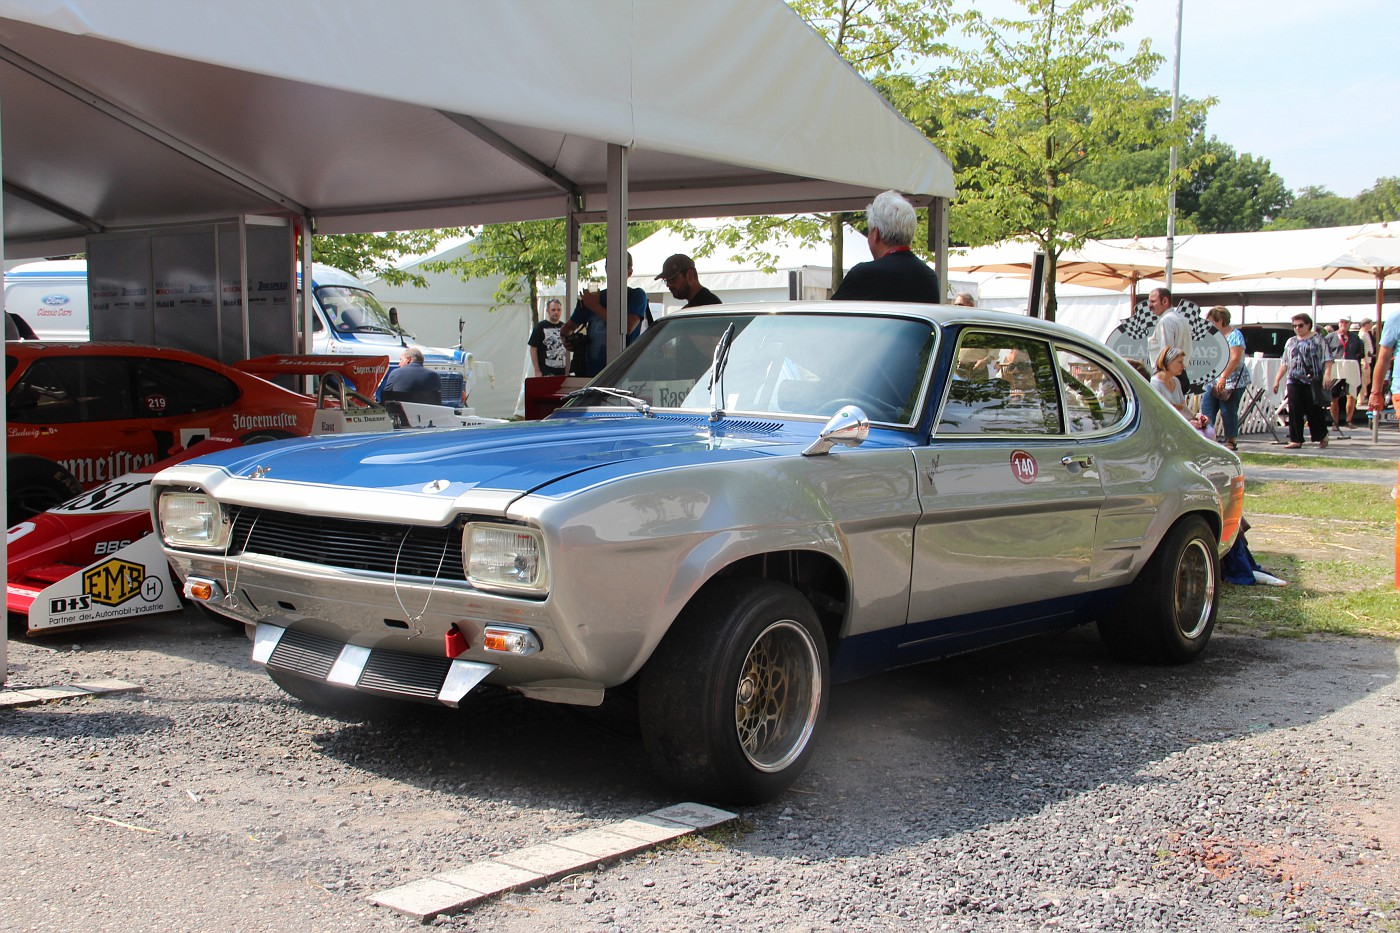 Photo 1970 Ford Capri 2400 Gt Weslake Ligthweigth 06 Schloss Dyck Classic Days 2014 Album Cars N Trucks 4 You Fotki Com Photo And Video Sharing Made Easy